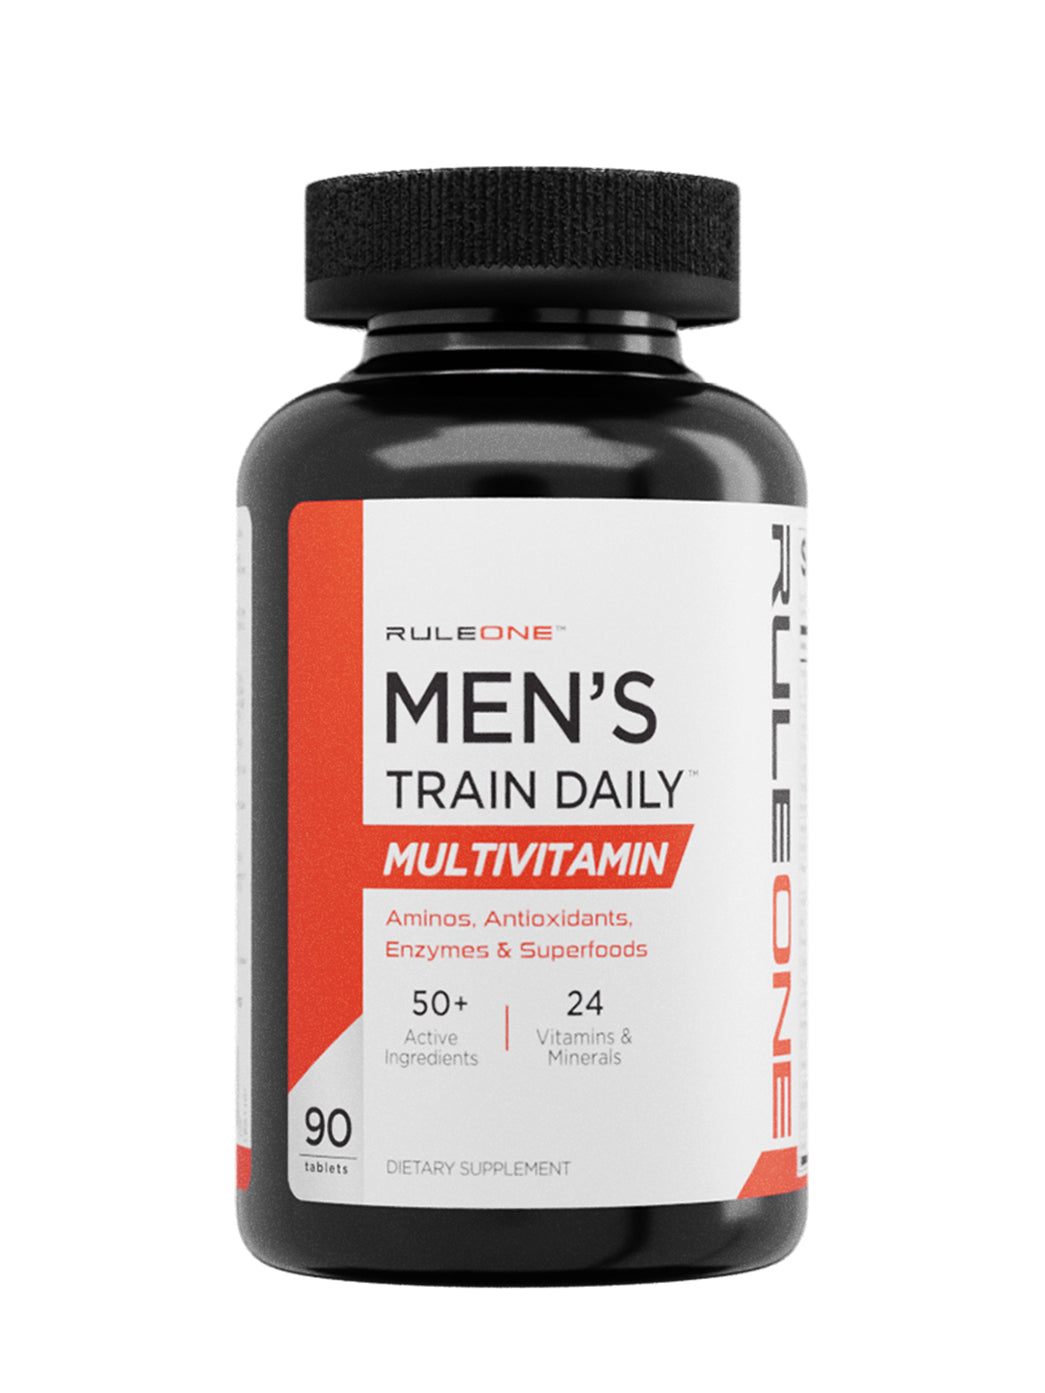 R1 Men's Train Daily